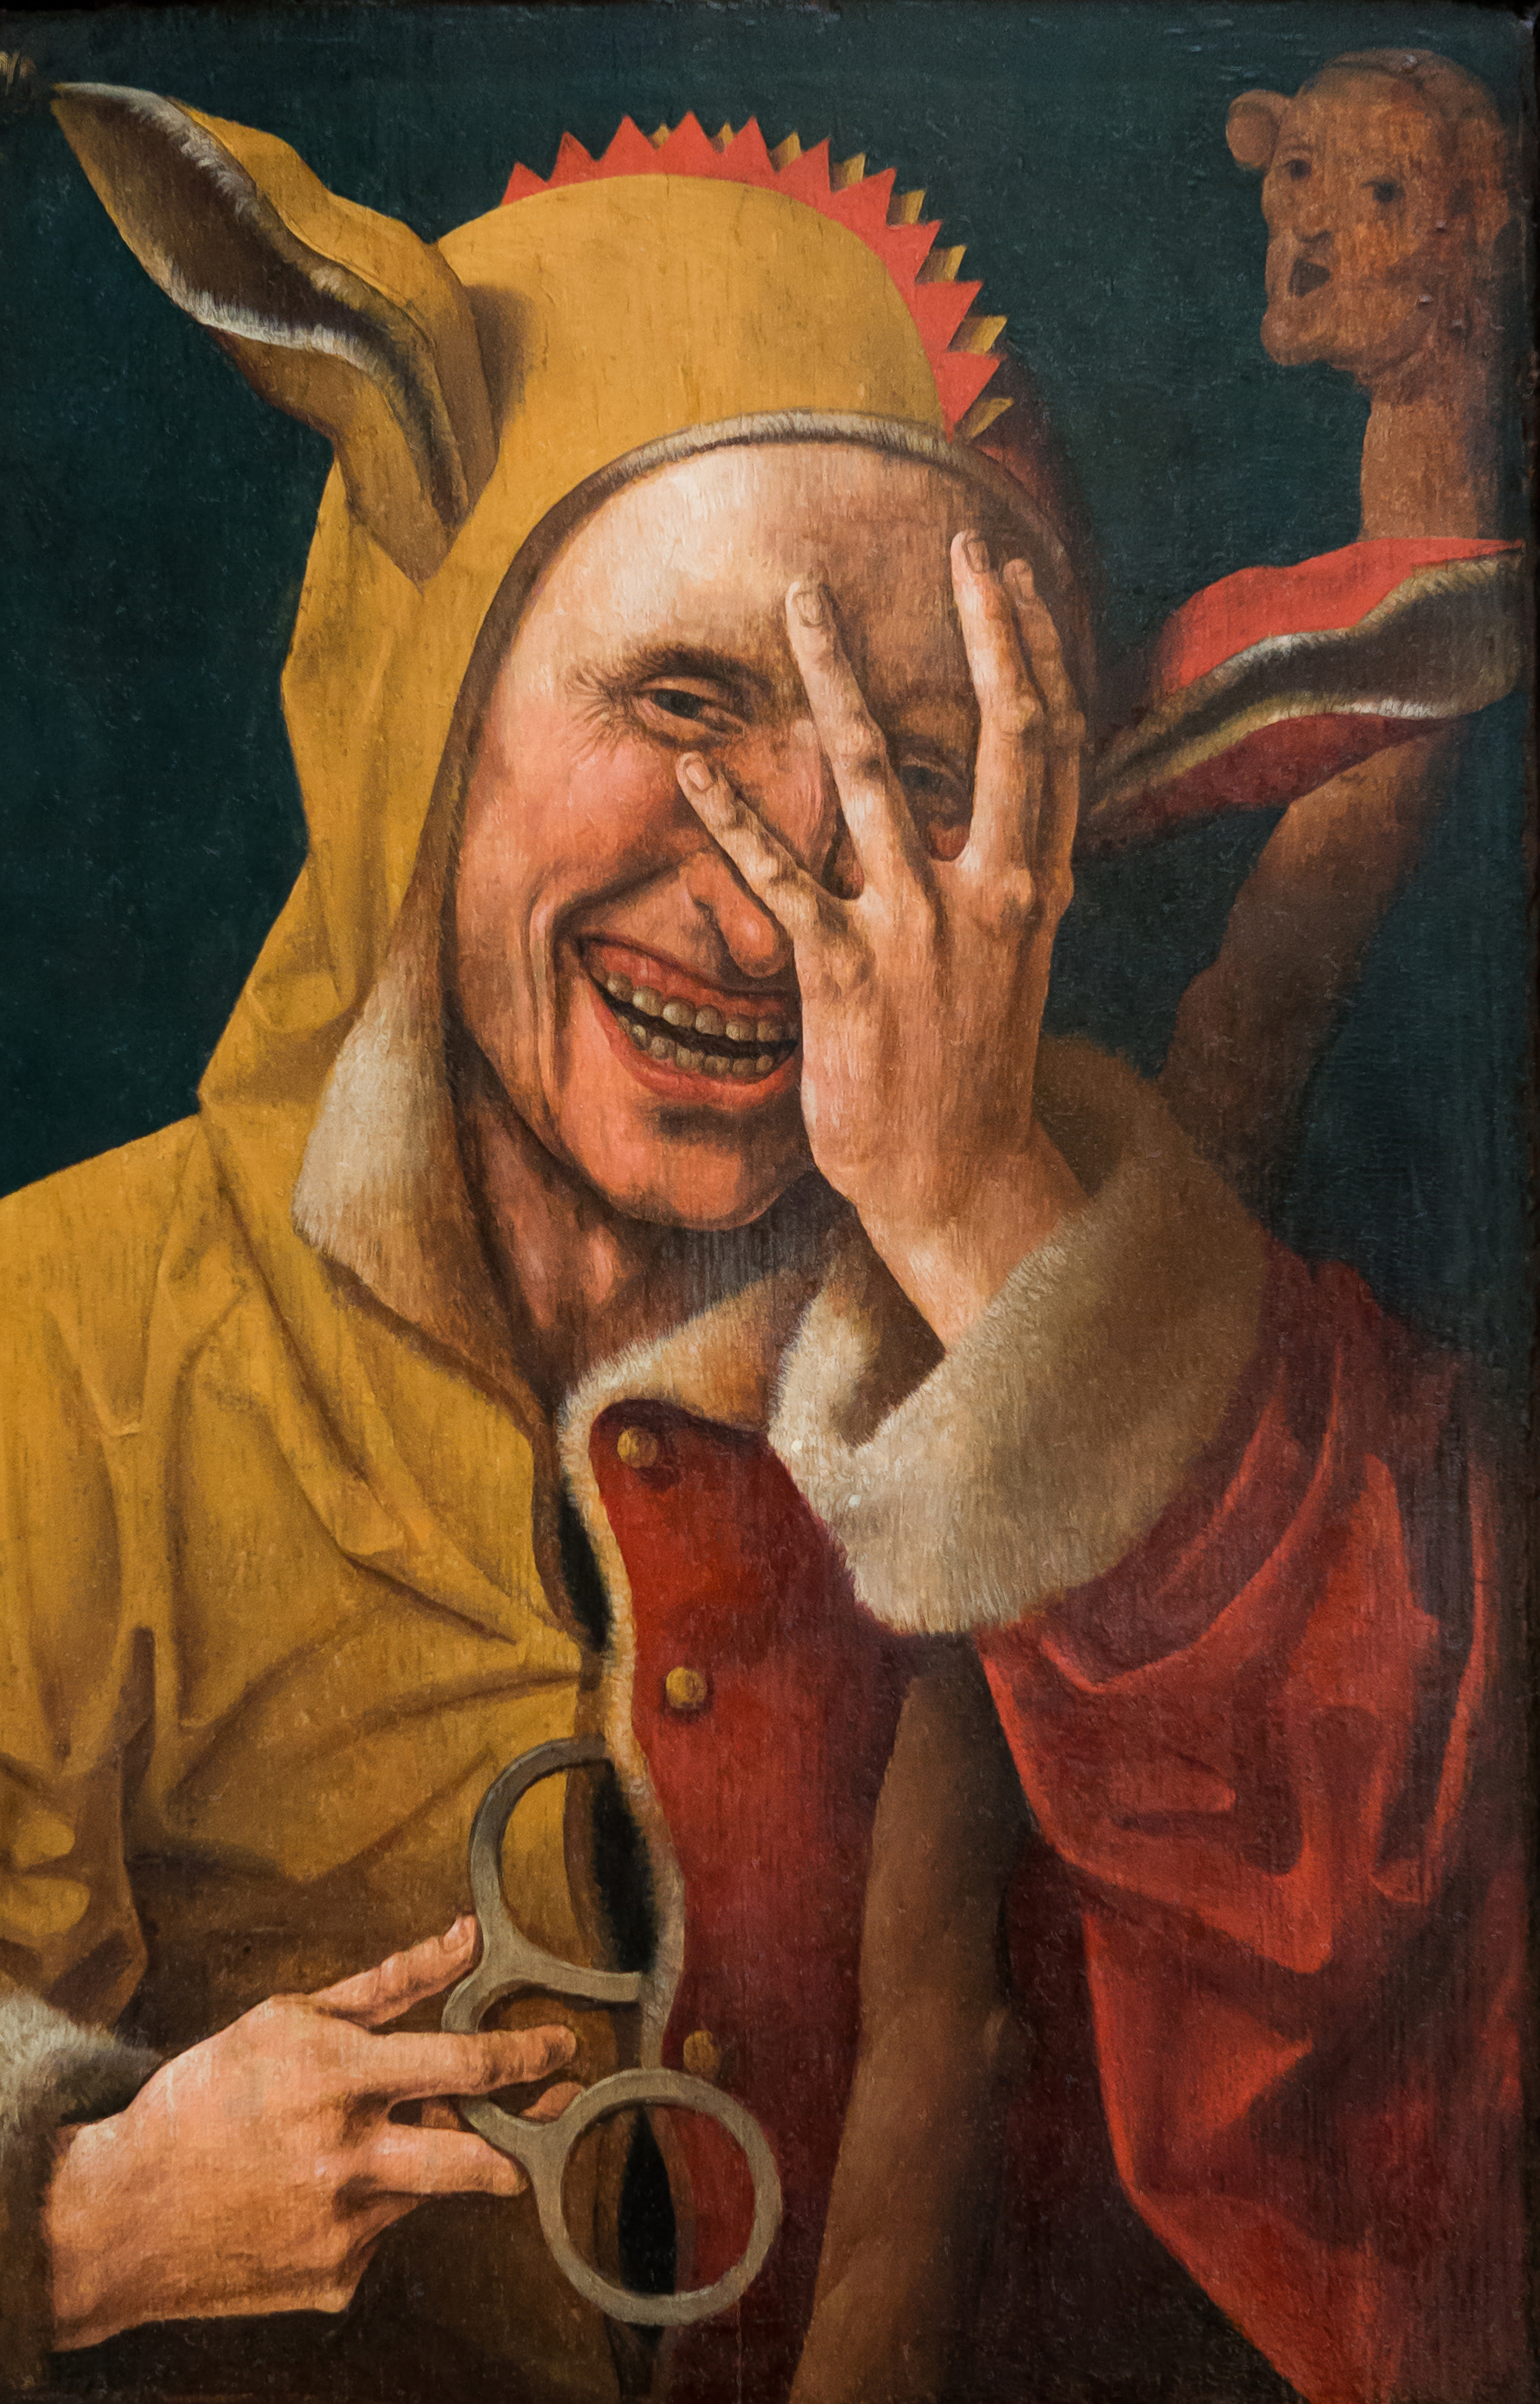 File:Laughing Fool.jpg